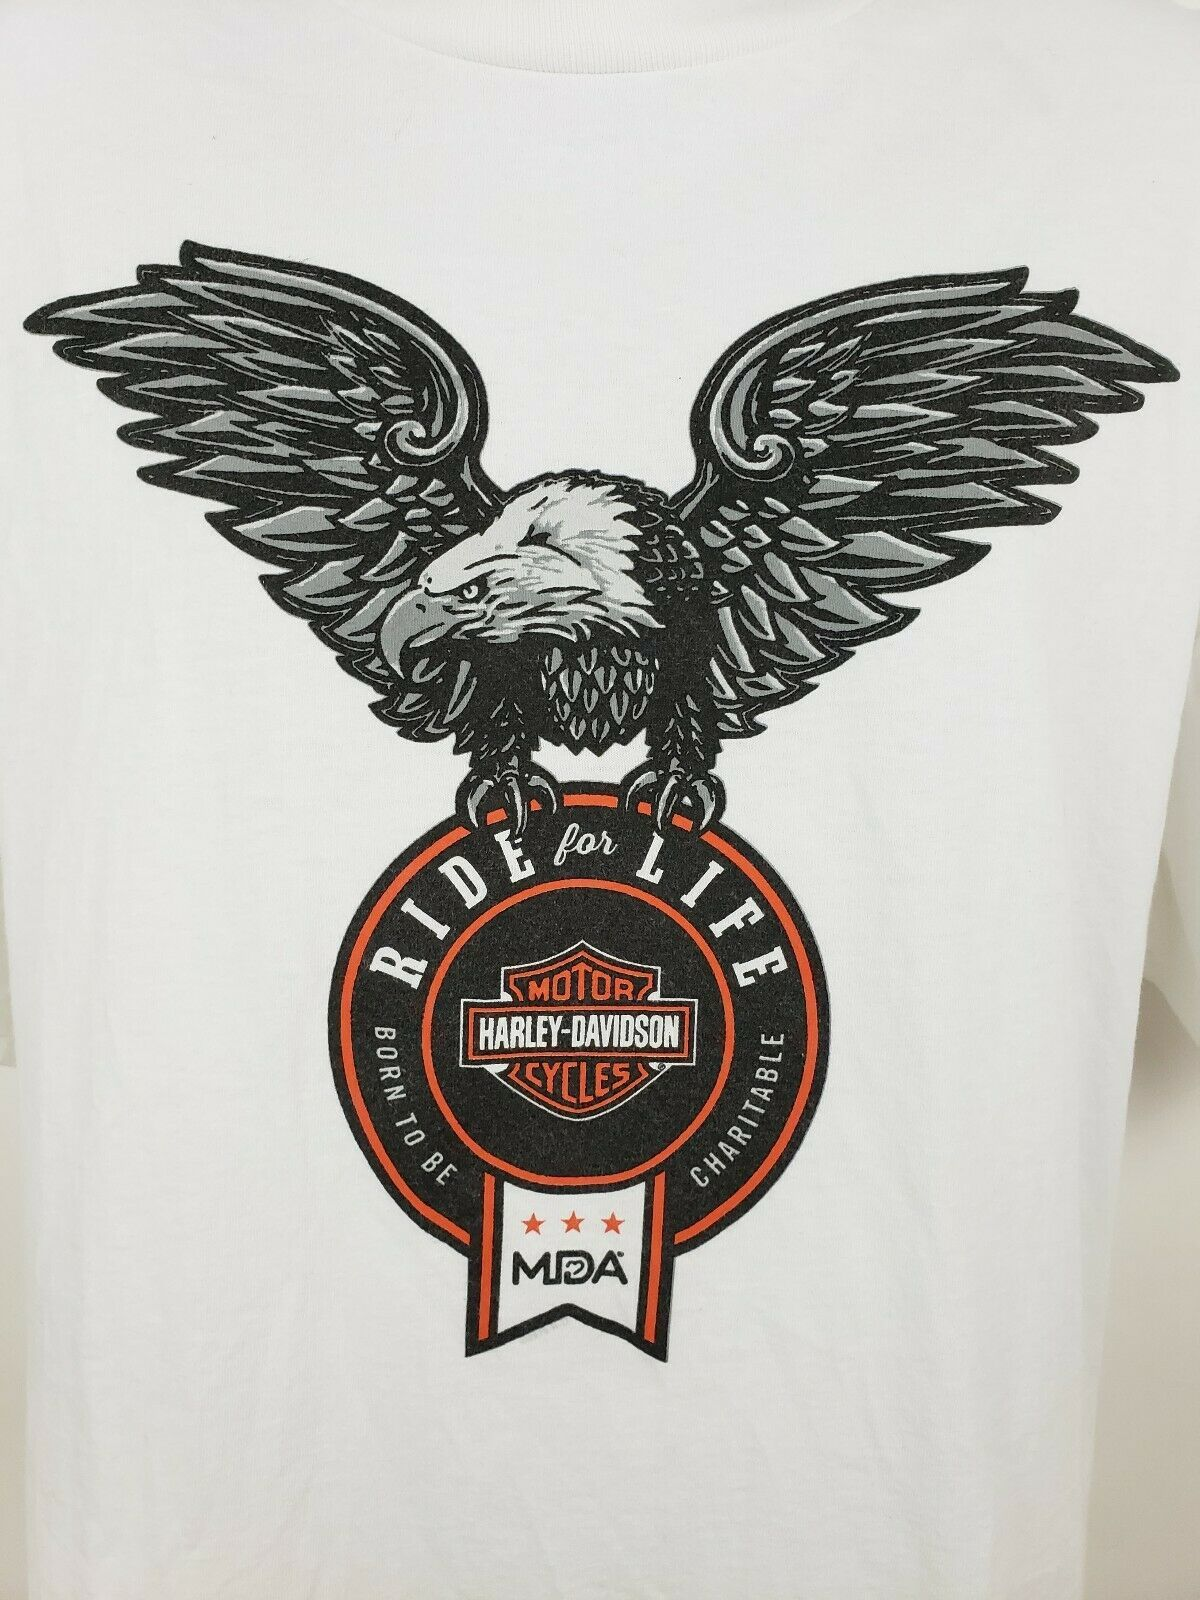 Harley Davidson Ride For Life Charity T-shirt White Size XL Eagle image 2